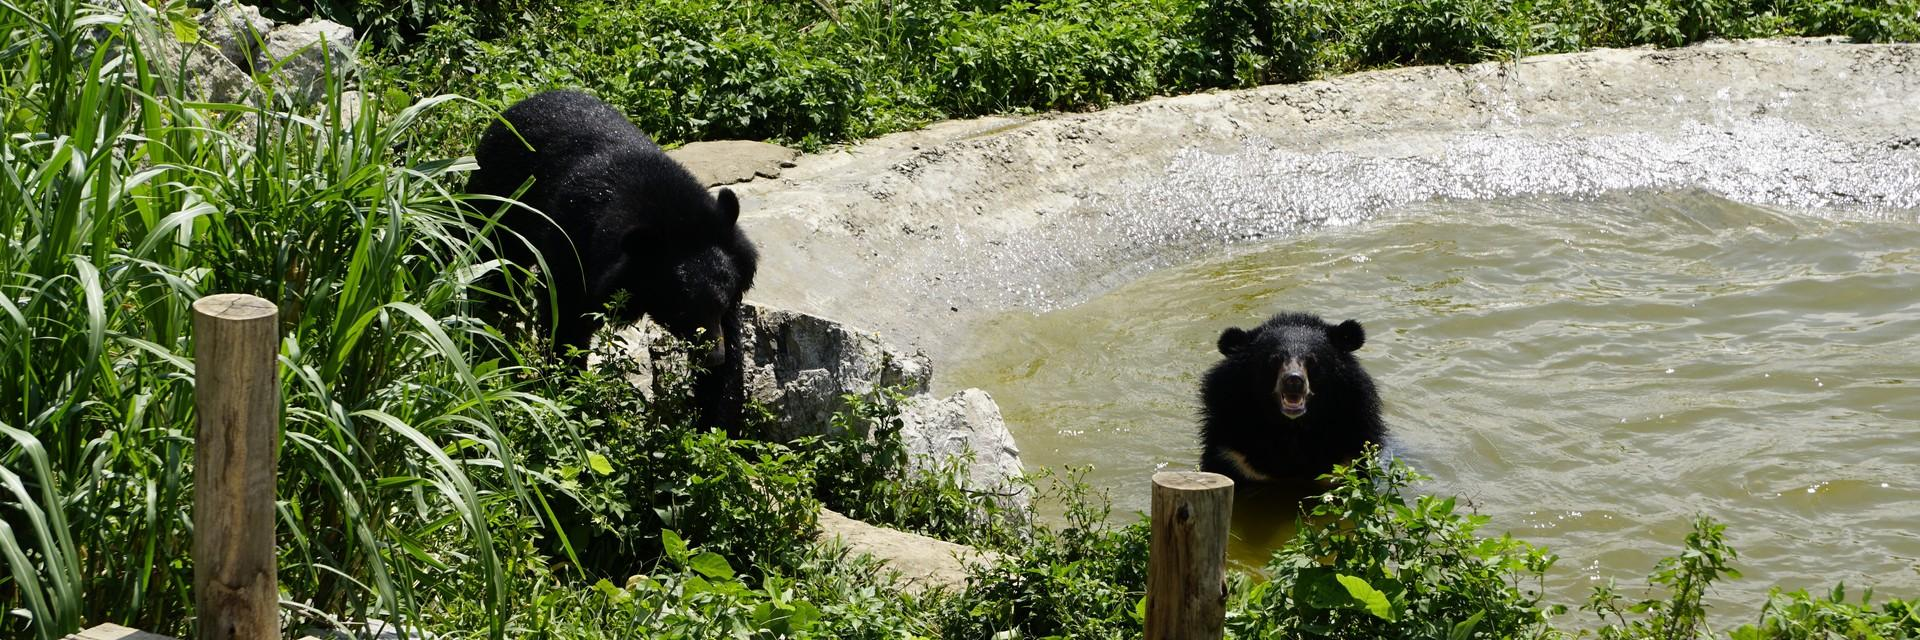 Bears in a pond at our sanctuary